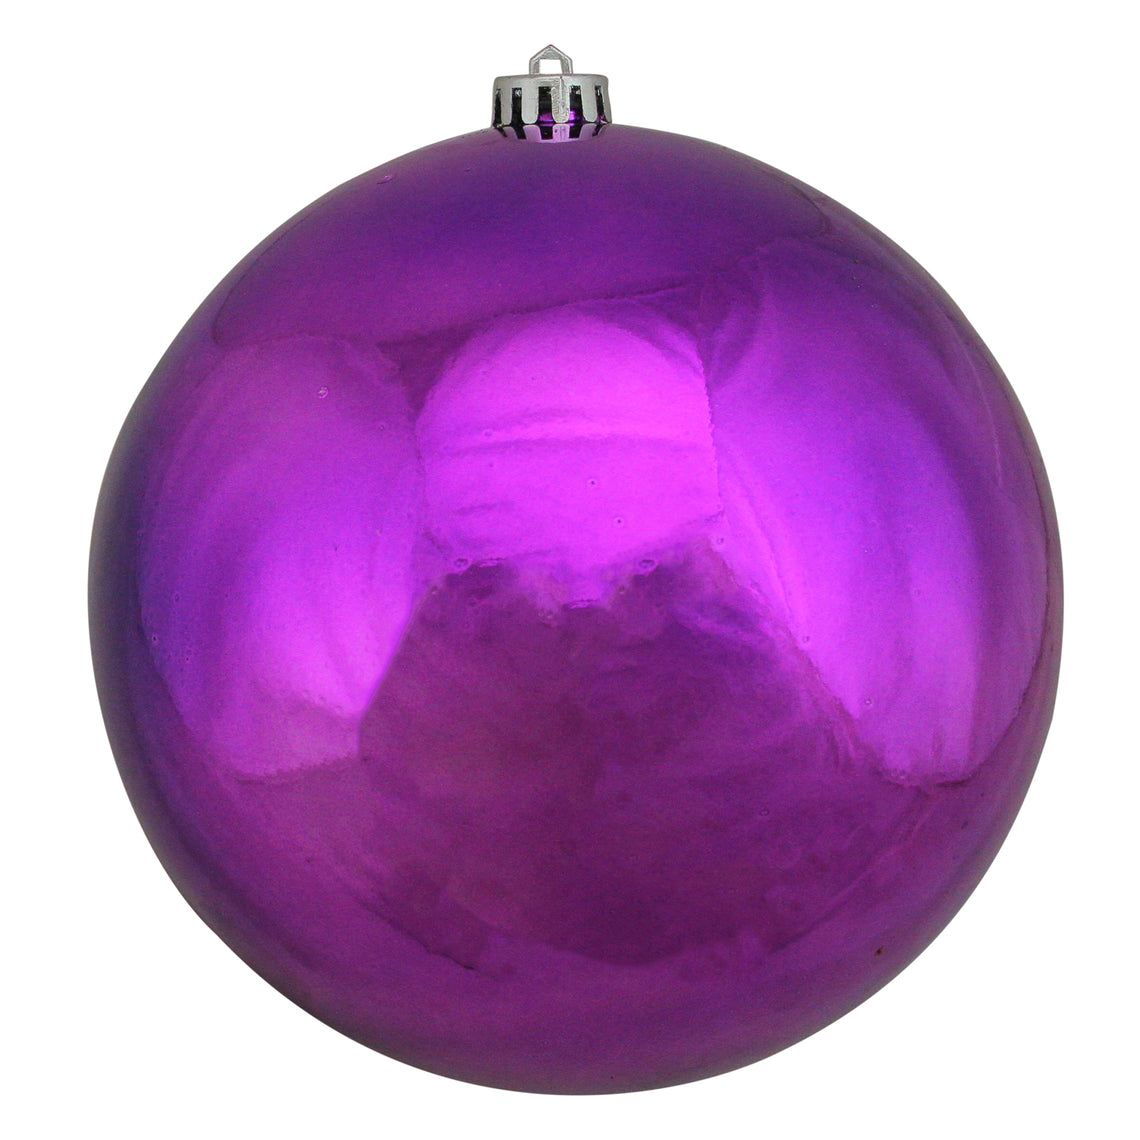 Purple Shatterproof Shiny Commercial Size Christmas Ball Ornament 8